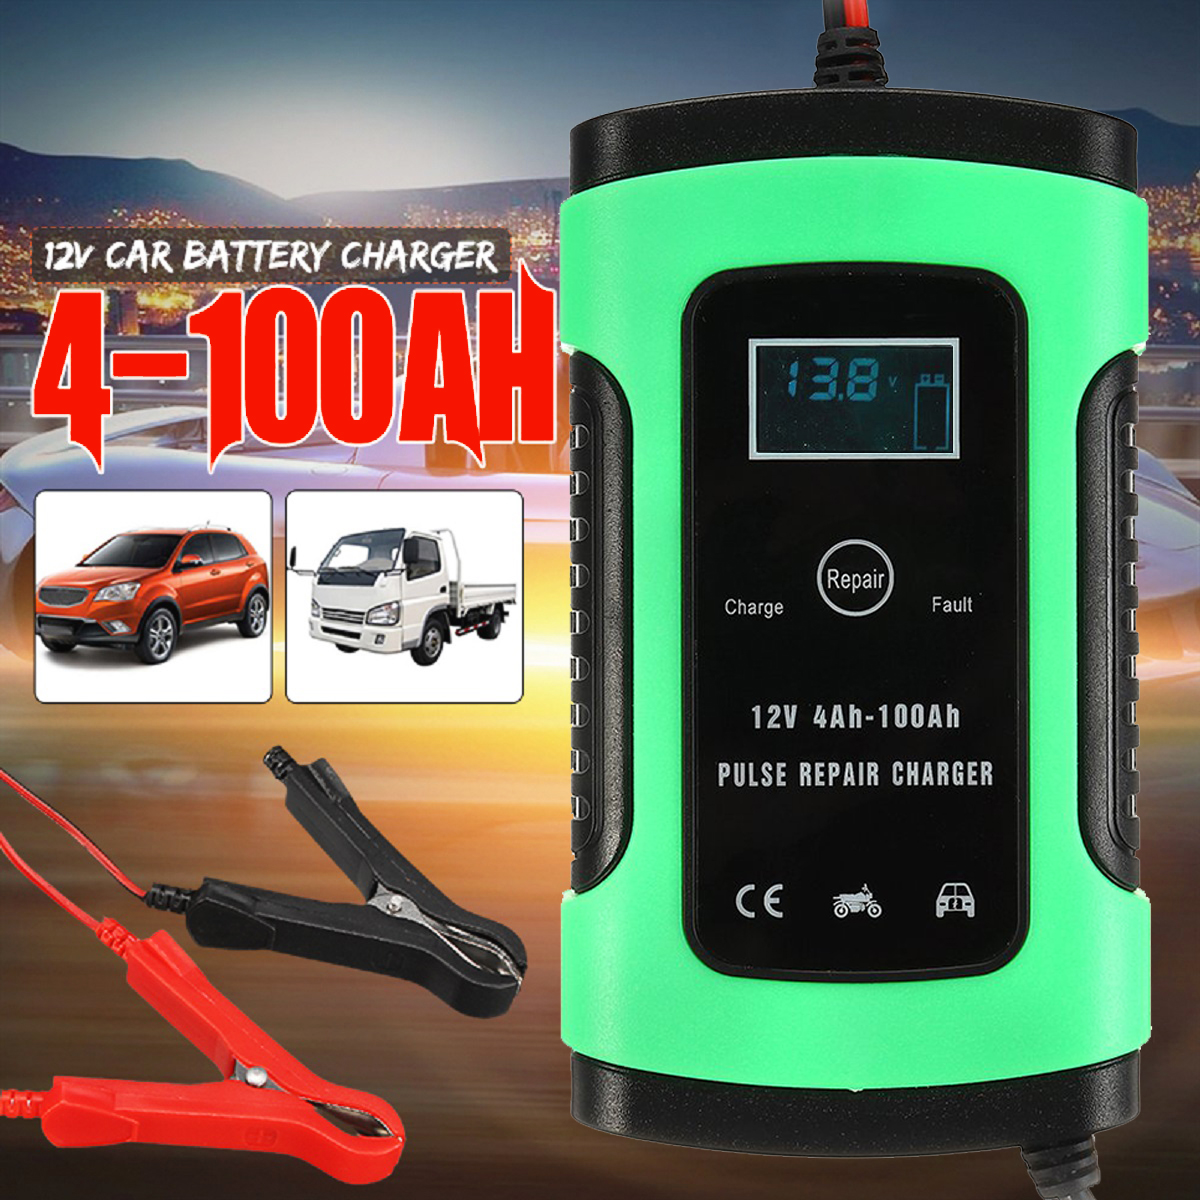 12V 5A Auto <font><b>Car</b></font> Intelligent <font><b>Battery</b></font> Charger Jump Starter LCD Intelligent 100-240V <font><b>100AH</b></font> Pulse Repair Type image